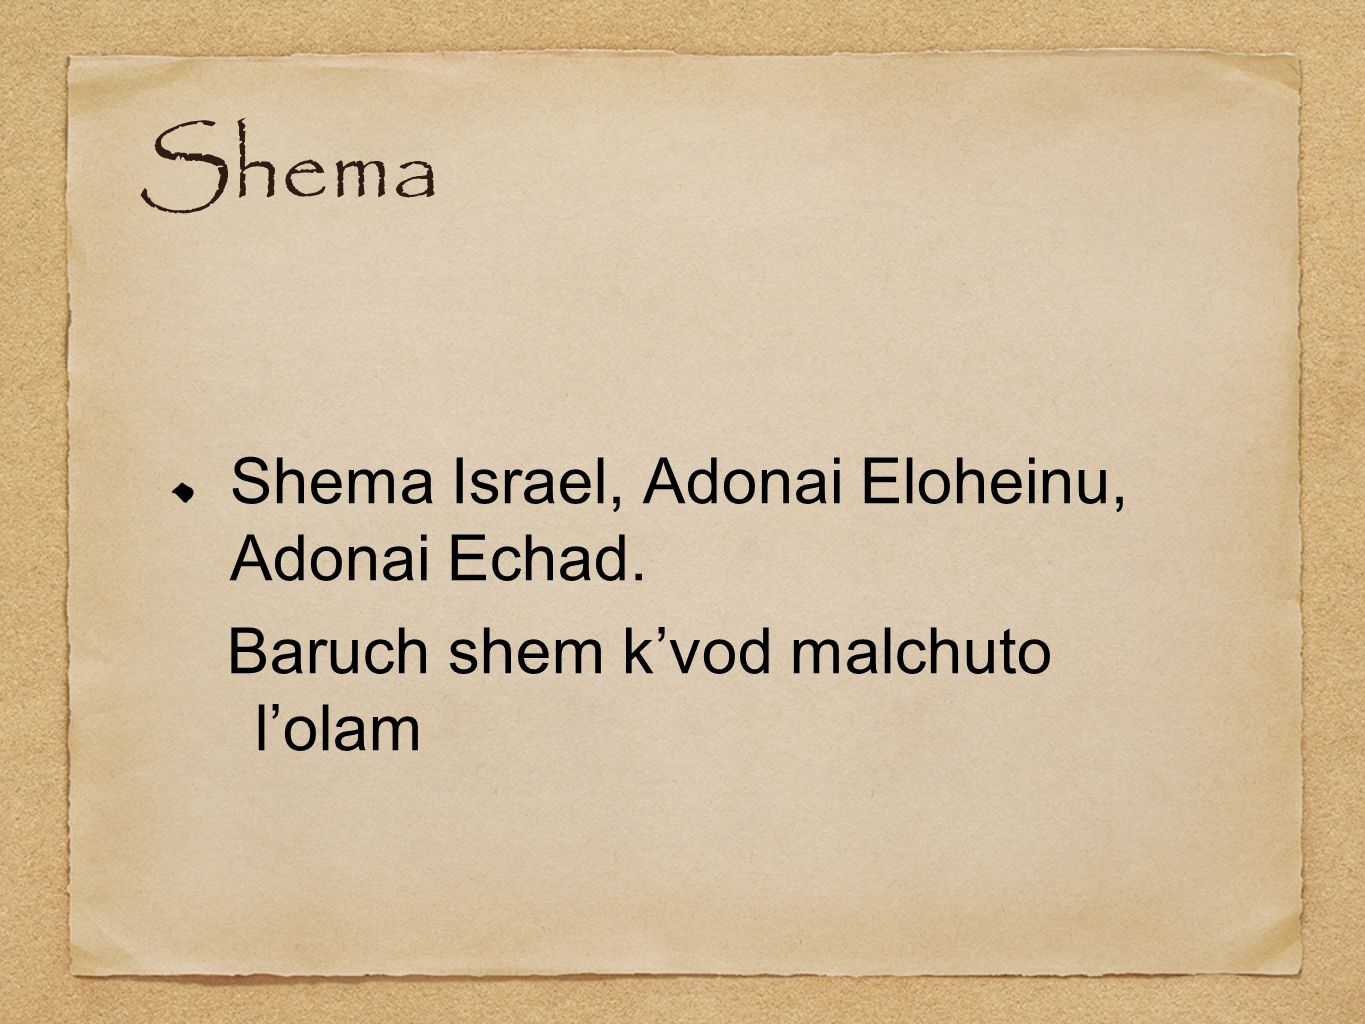 Shema (English) Hear, O Israel, the LORD our God, the LORD is One.